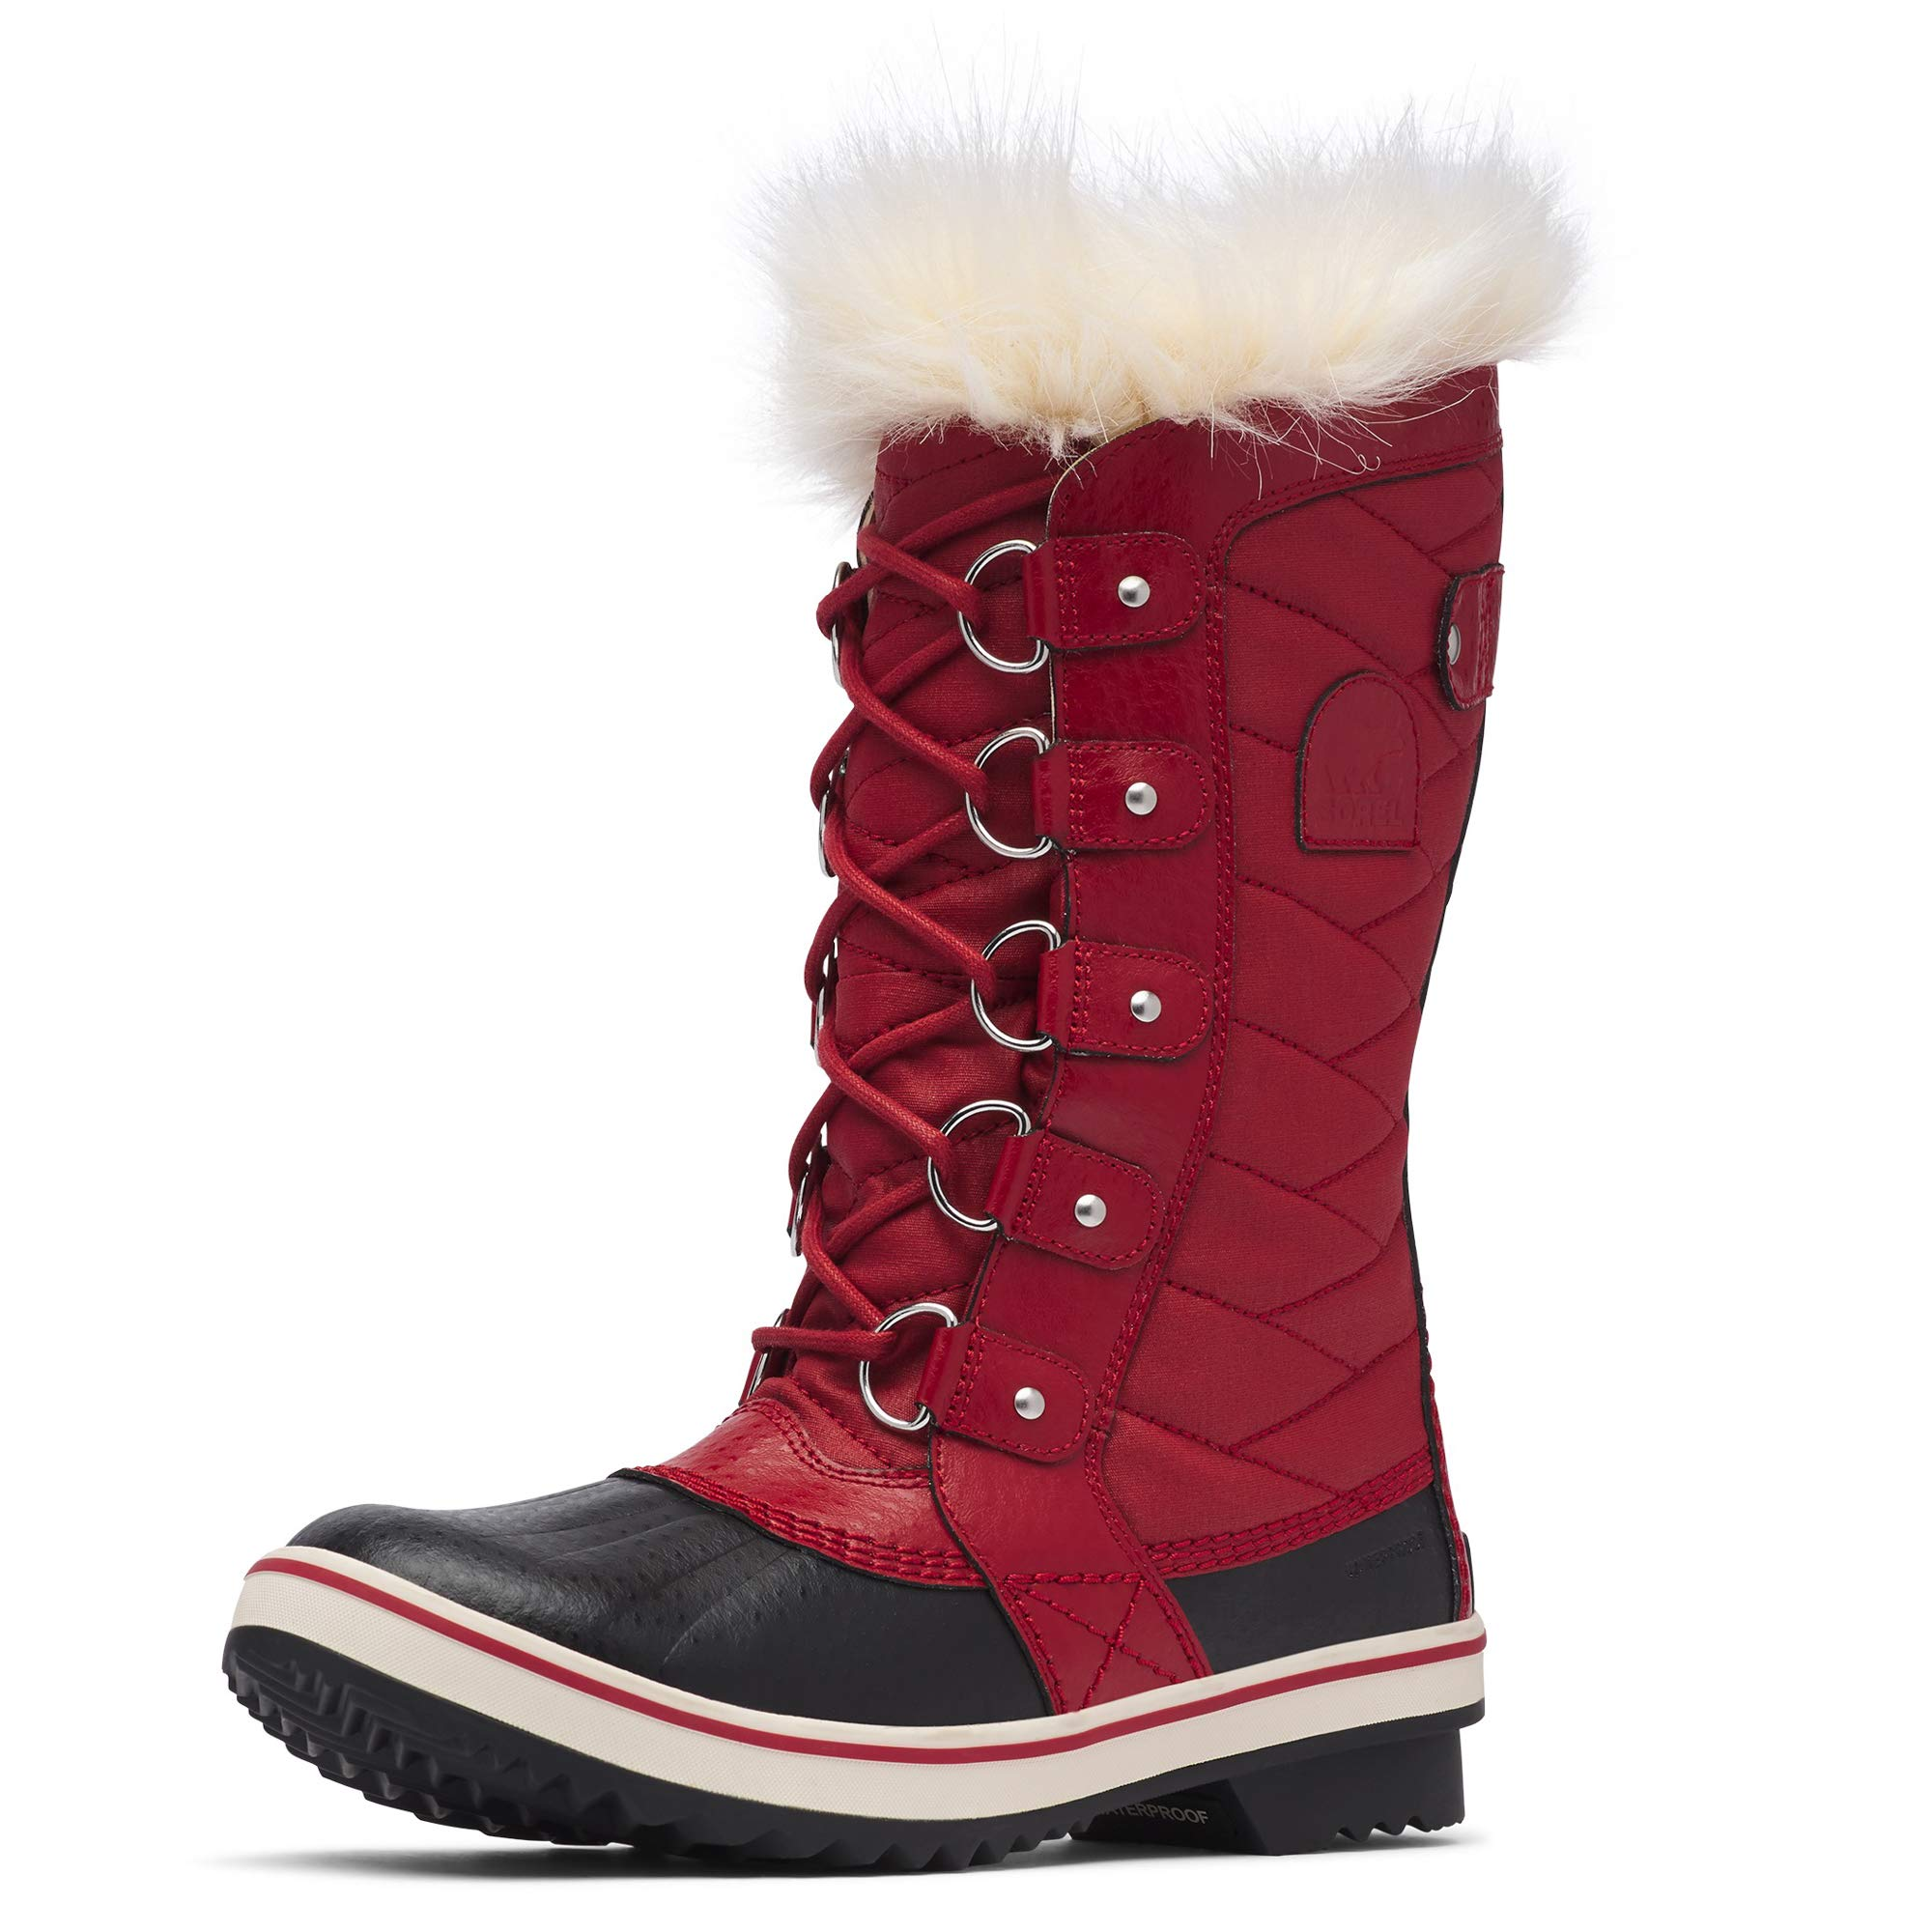 Sorel - Women's Tofino II Waterproof Insulated Winter Boot with Faux Fur Cuff, Red Dahlia, 8 M US by Sorel